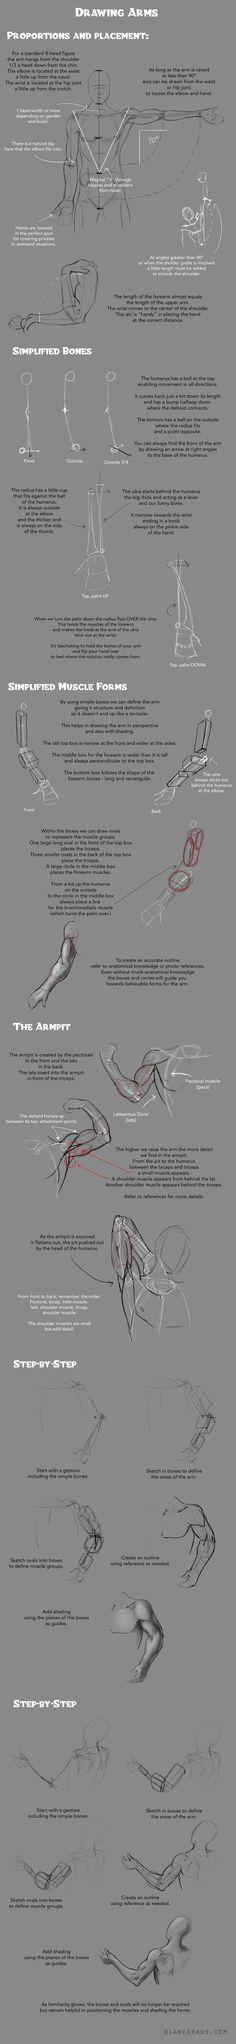 Drawing Arms Tutorial by DianetheKraus on deviantART